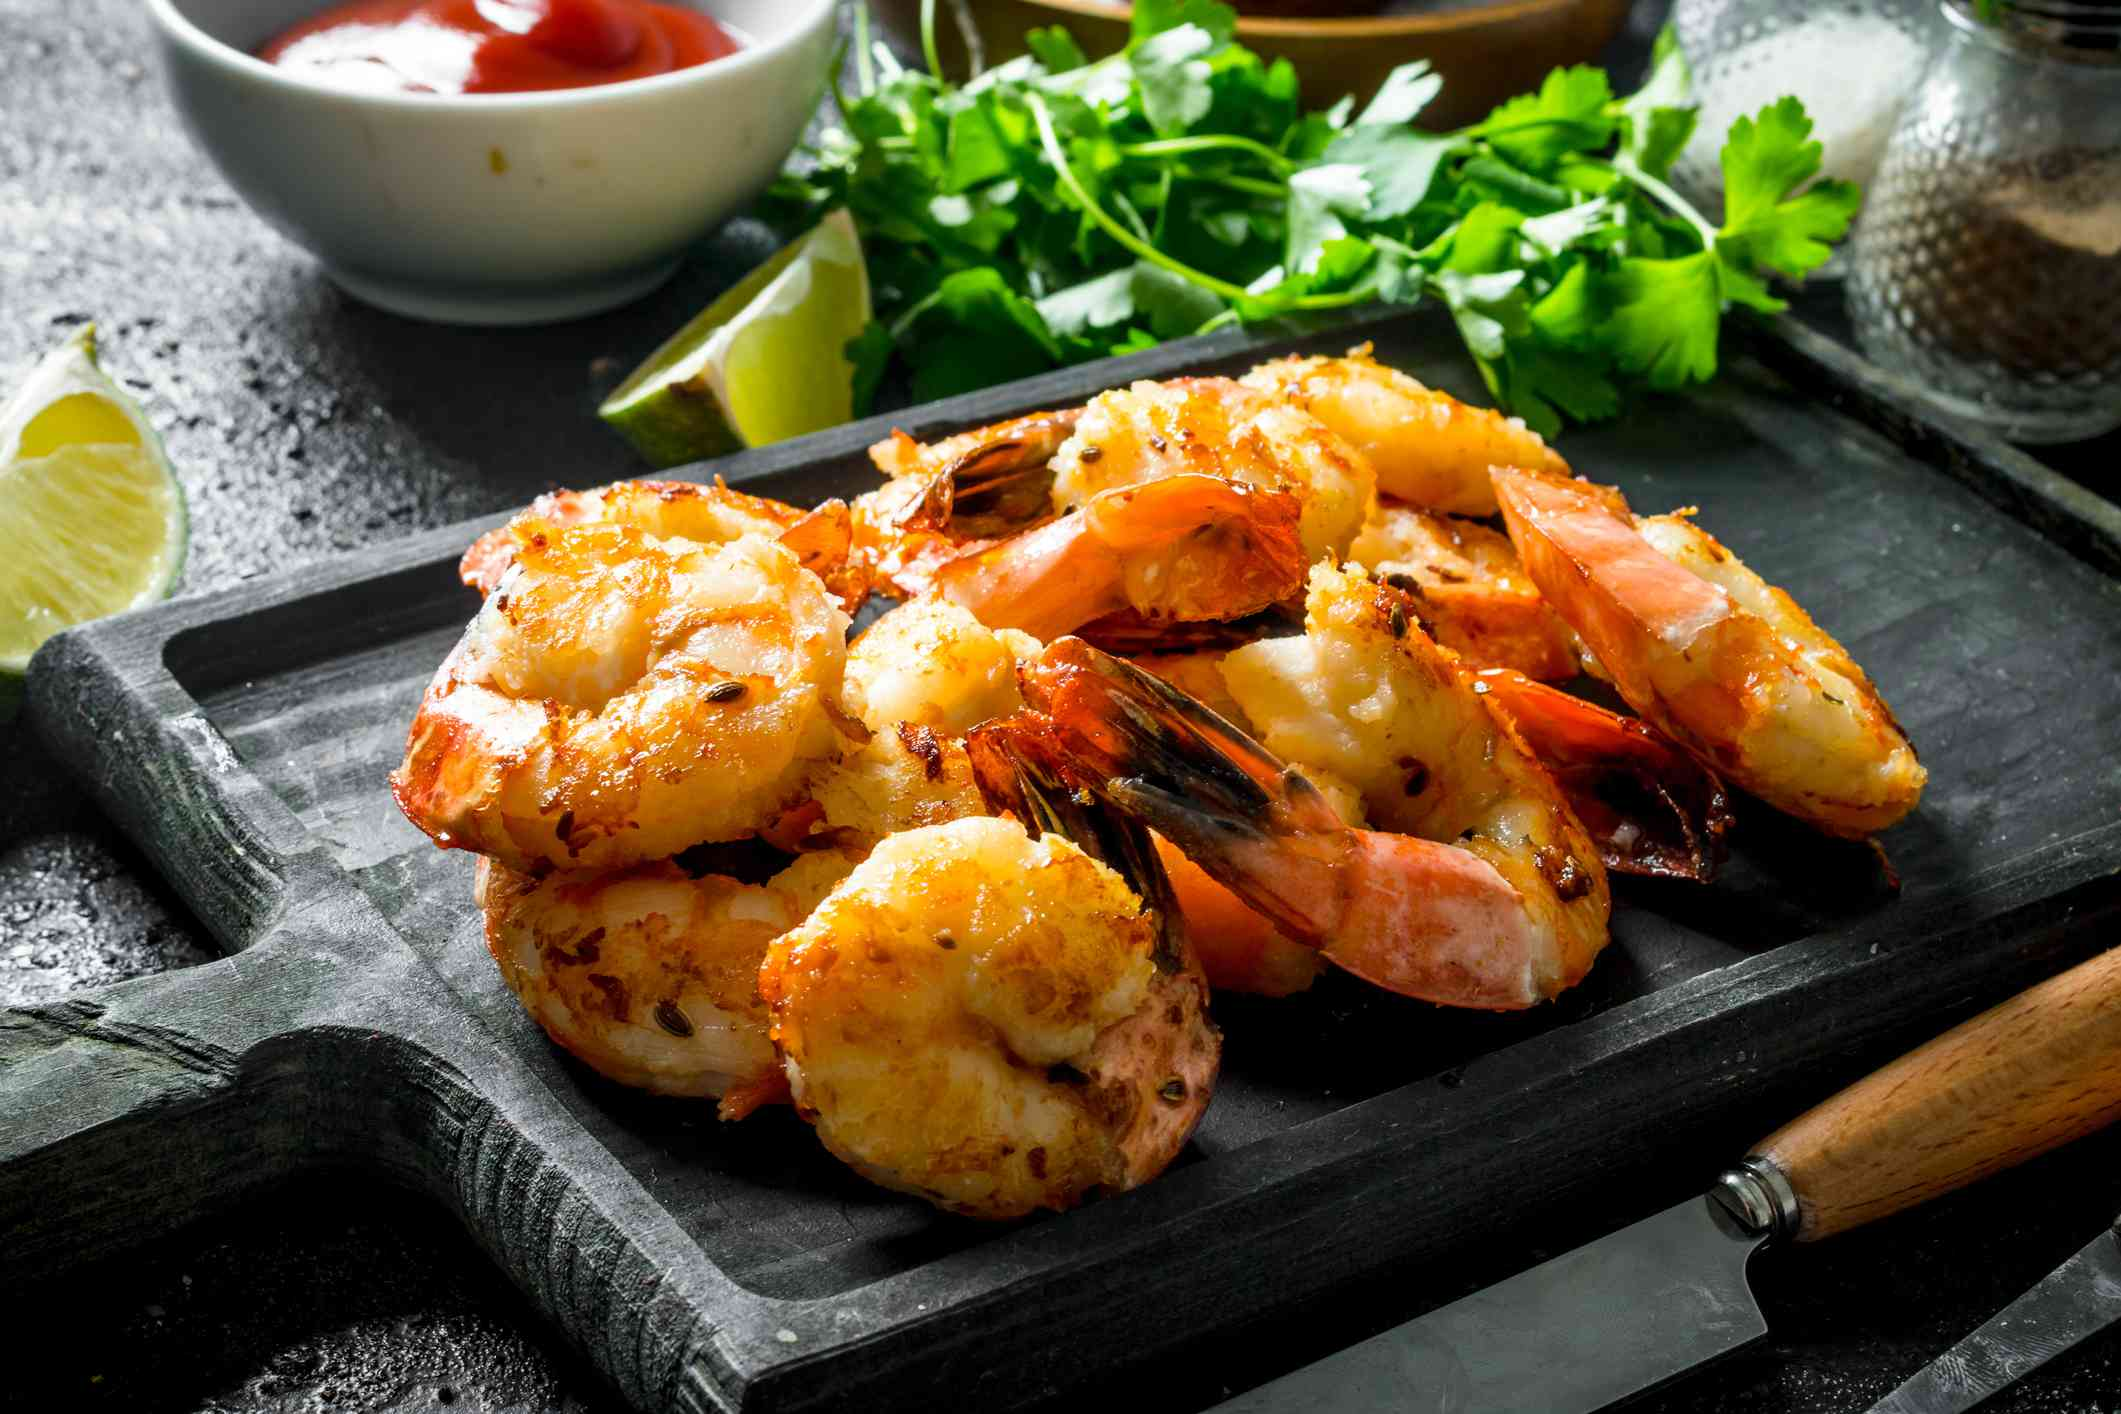 Delicious shrimps on the cutting Board.